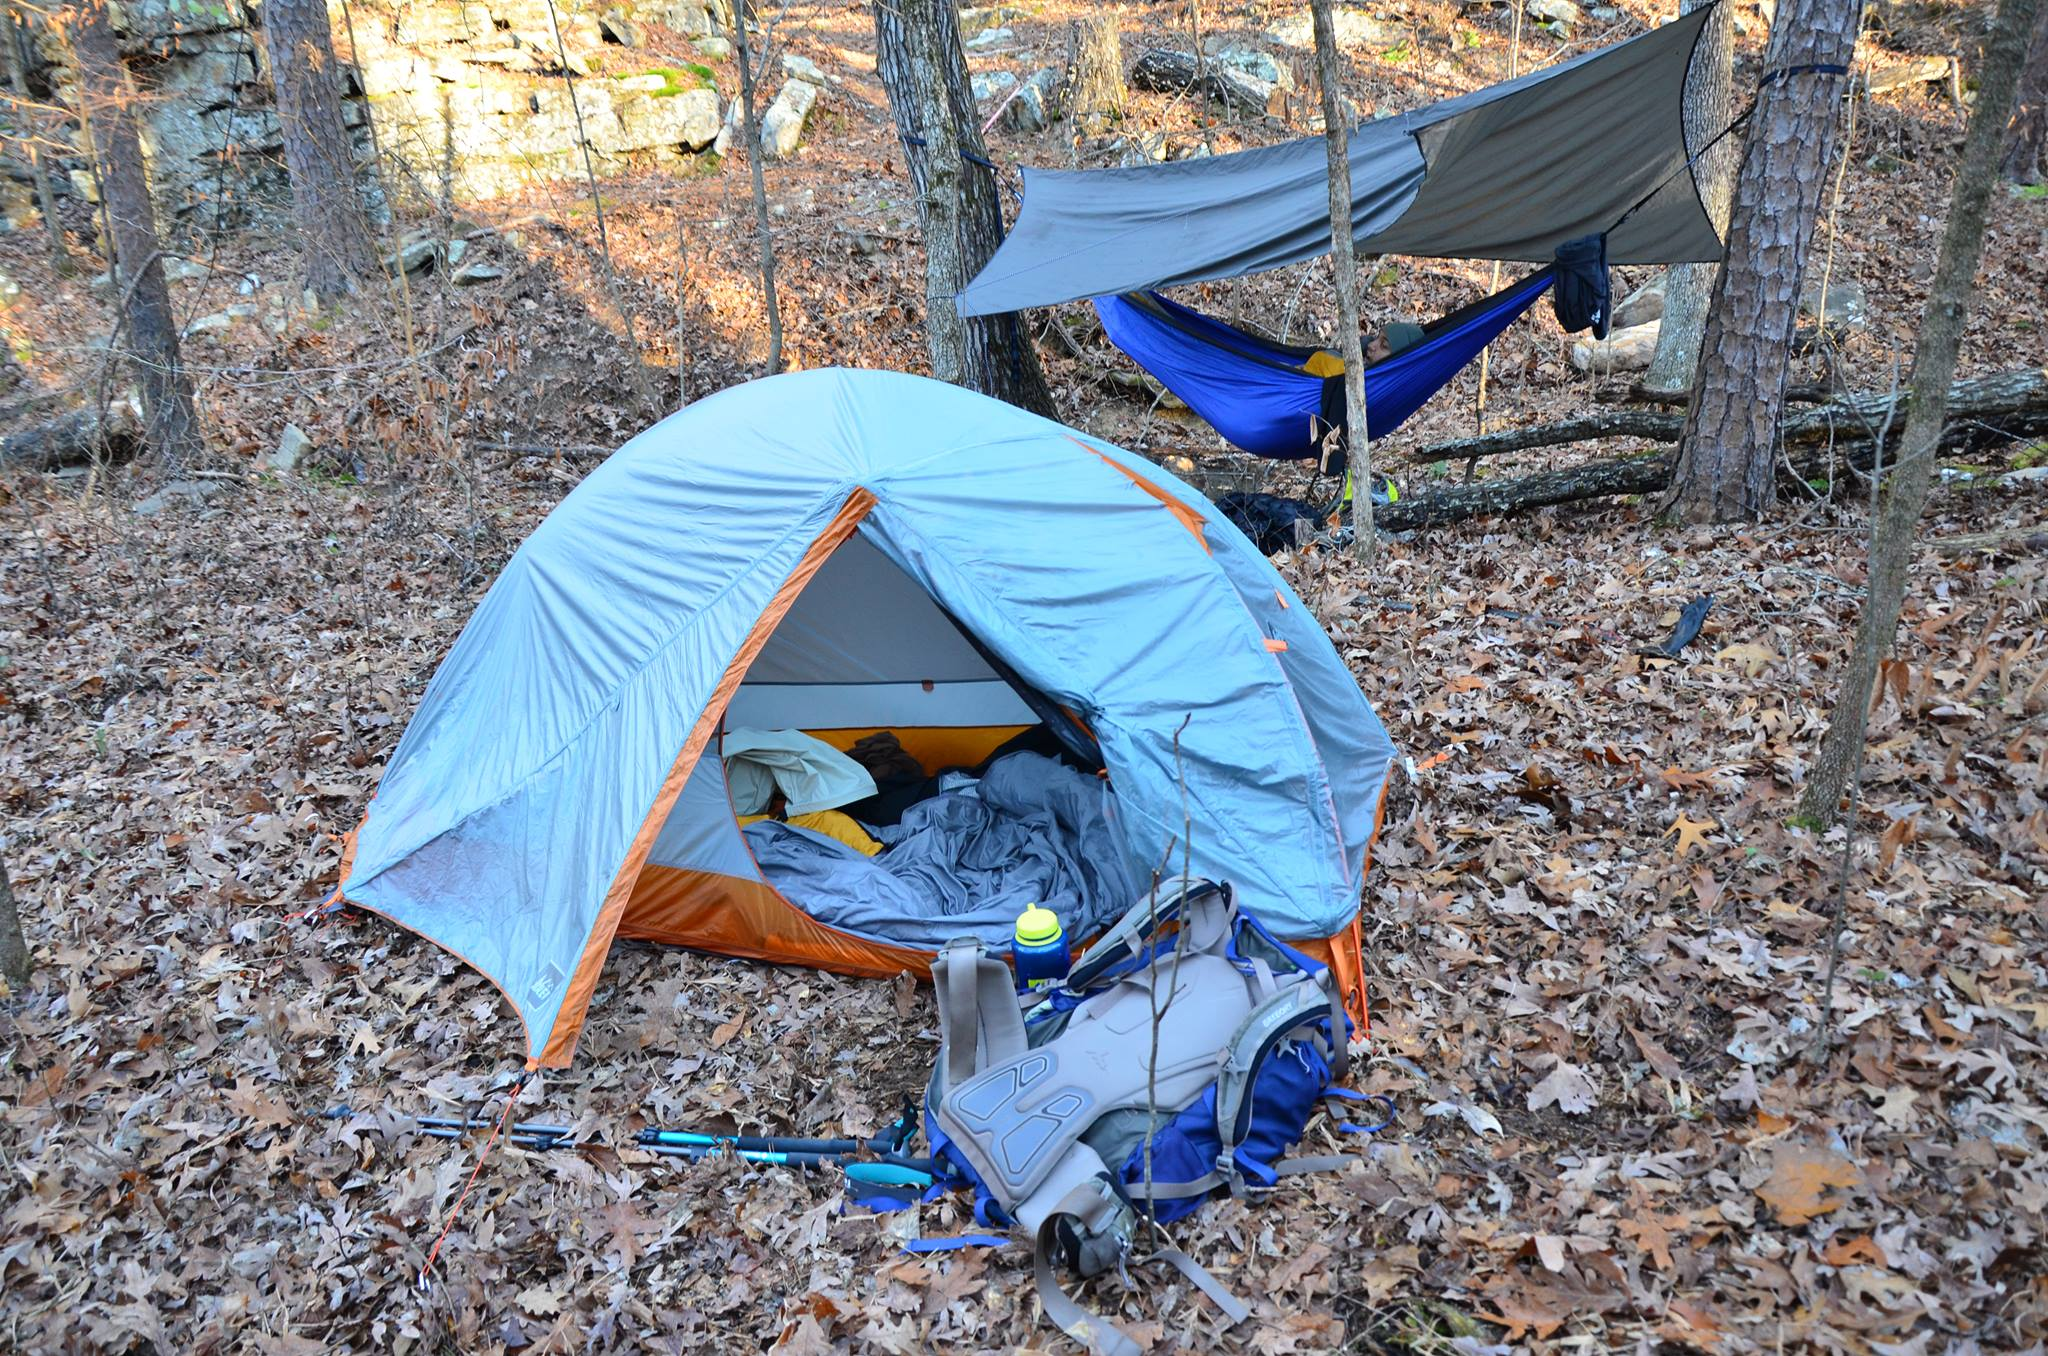 A debate is growing between hammock c&ing and tent c&ing. People who hammock c& like that they are lighter easier to set up and take up way less ... & Hammock camping versus tent camping - Right Kind of Lost